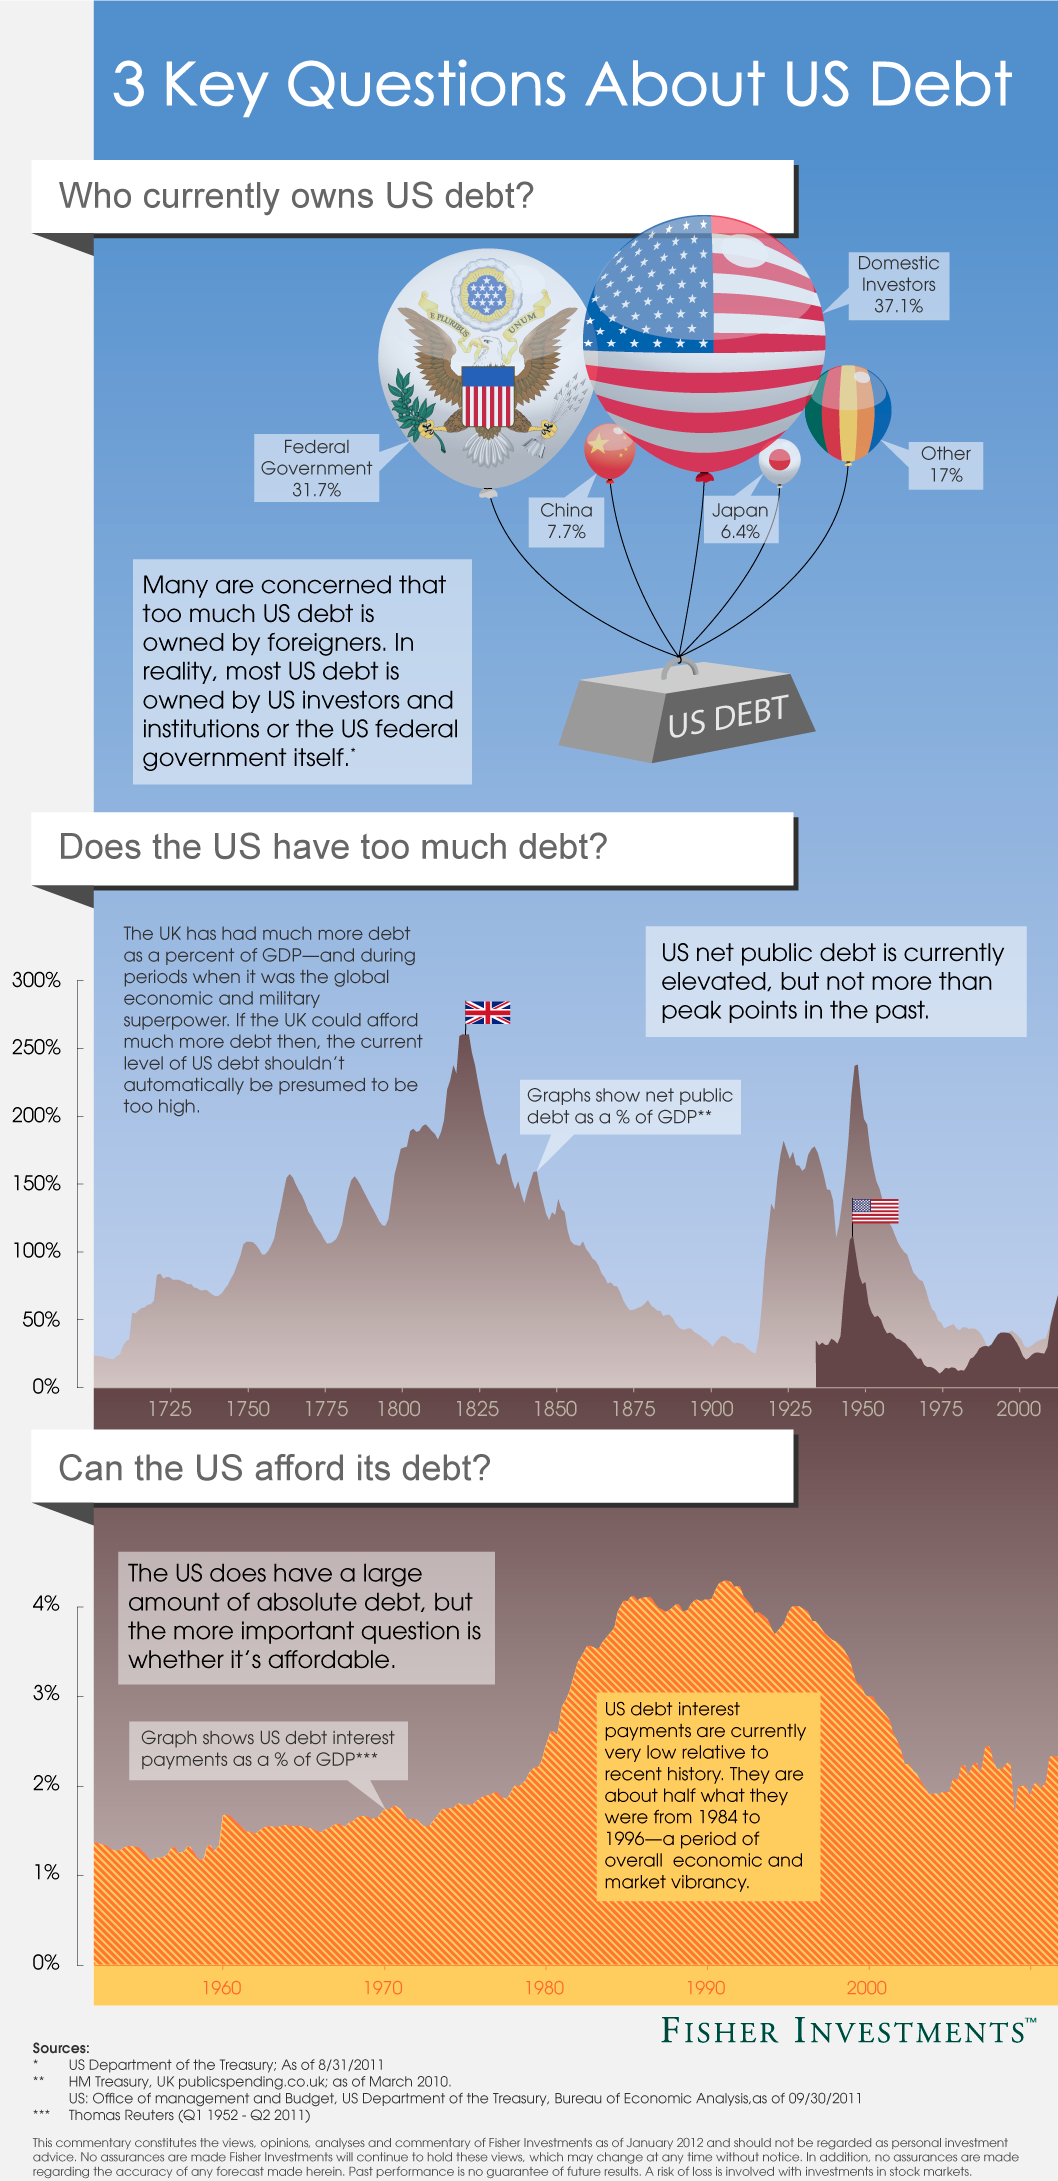 3 Key Questions About U.S. Debt